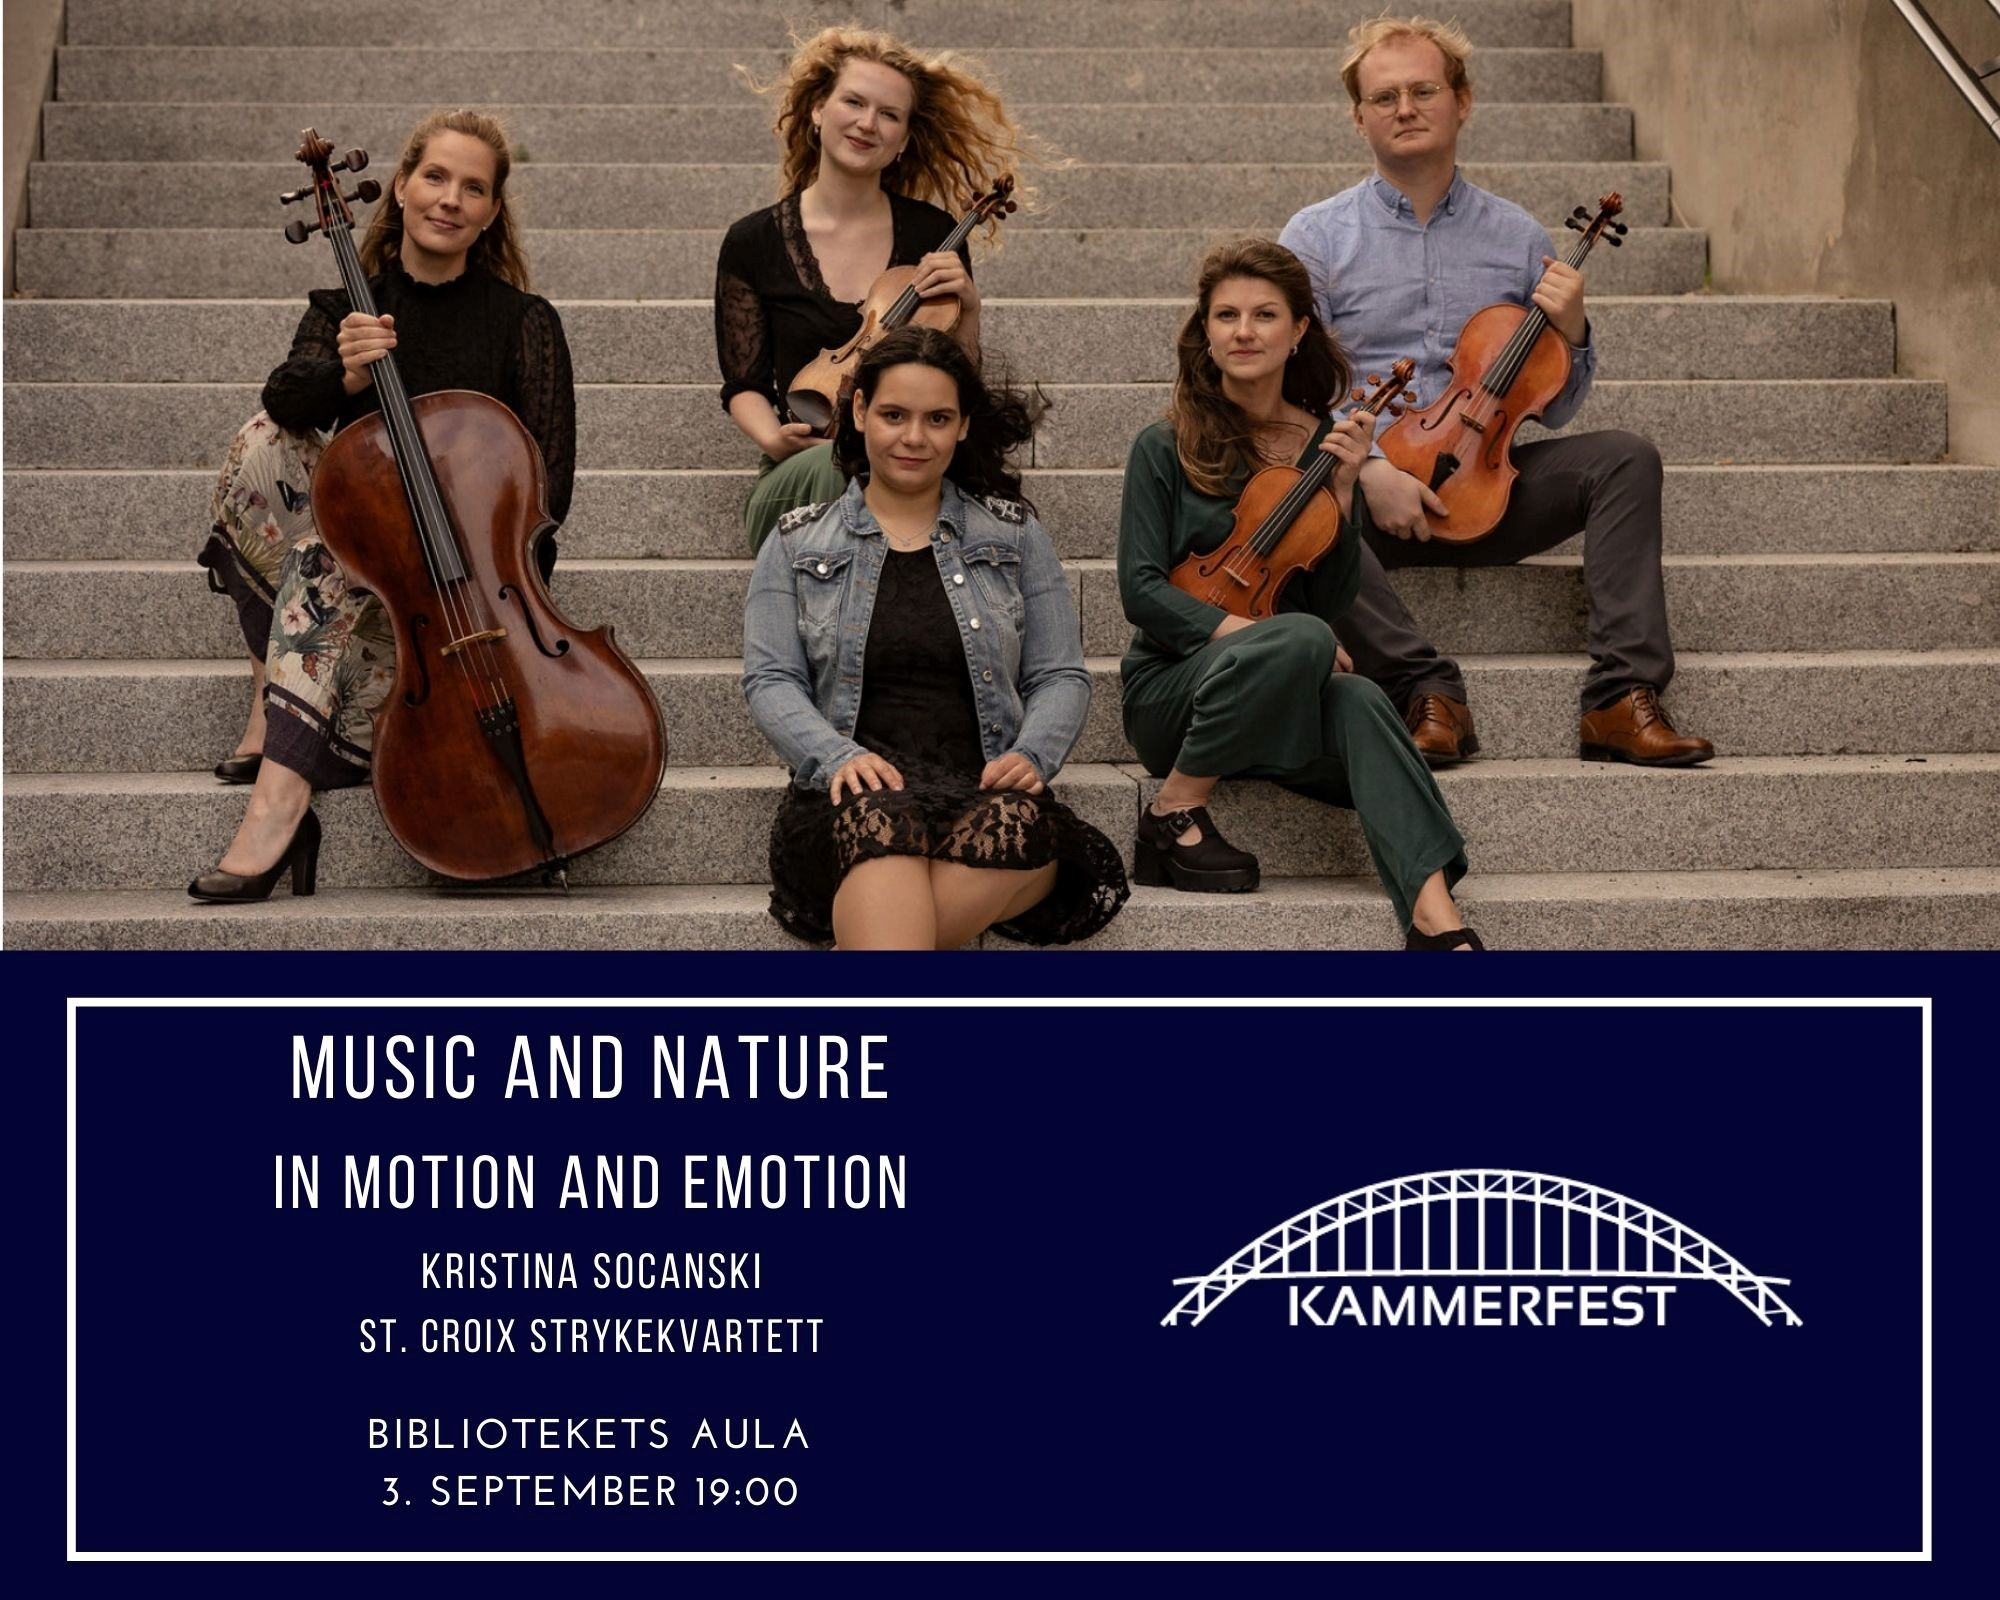 Music and nature, in motion and emotion